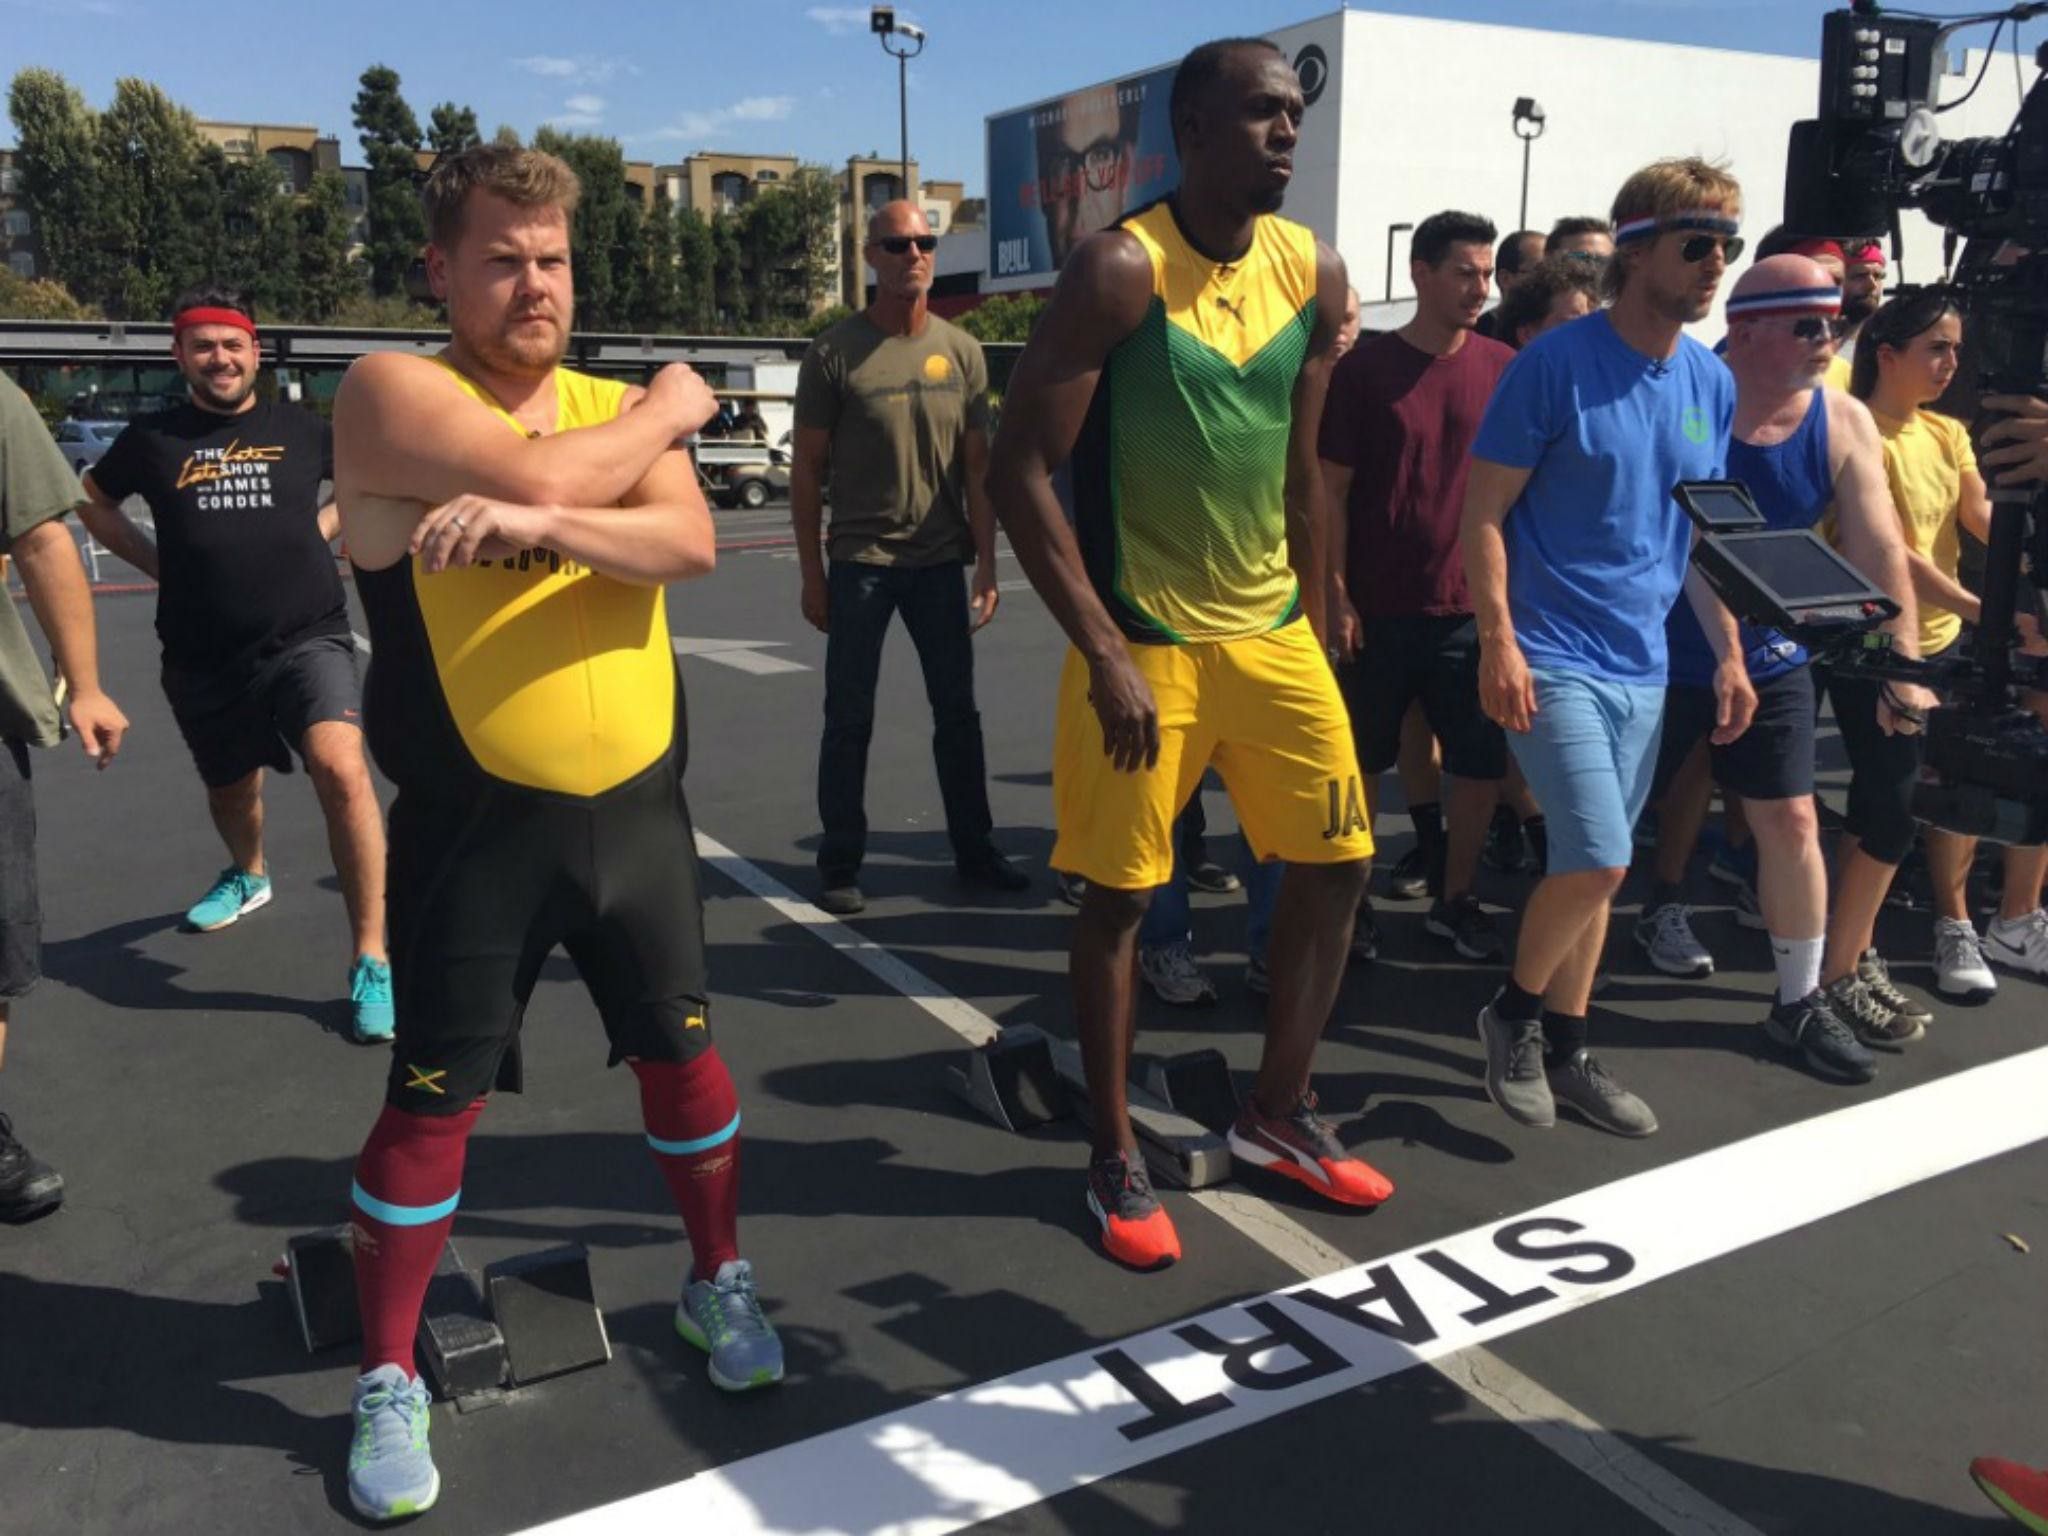 2048x1536 James Corden challenged Usain Bolt to a 100m race on the Late Late Show -  watch | The Independent